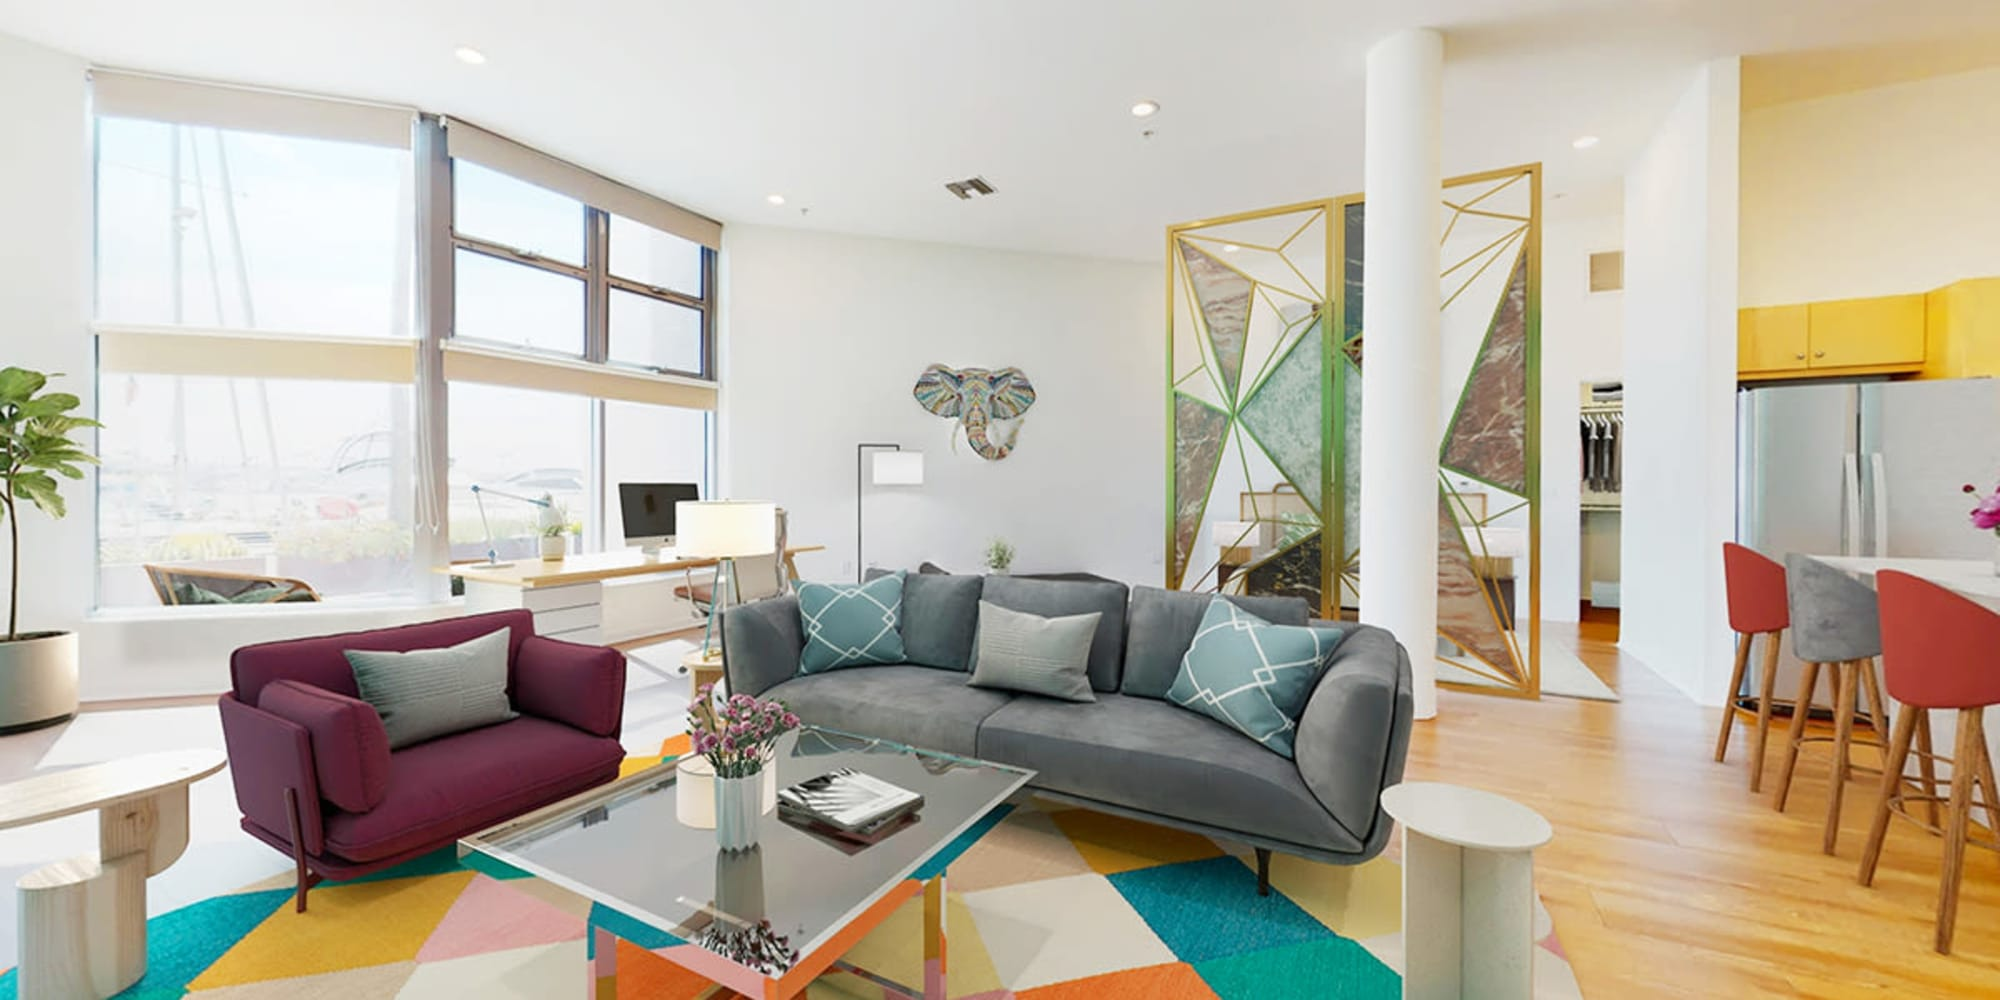 Spacious loft apartment's living room with waterfront views and hardwood floor at Esprit Marina del Rey in Marina Del Rey, California